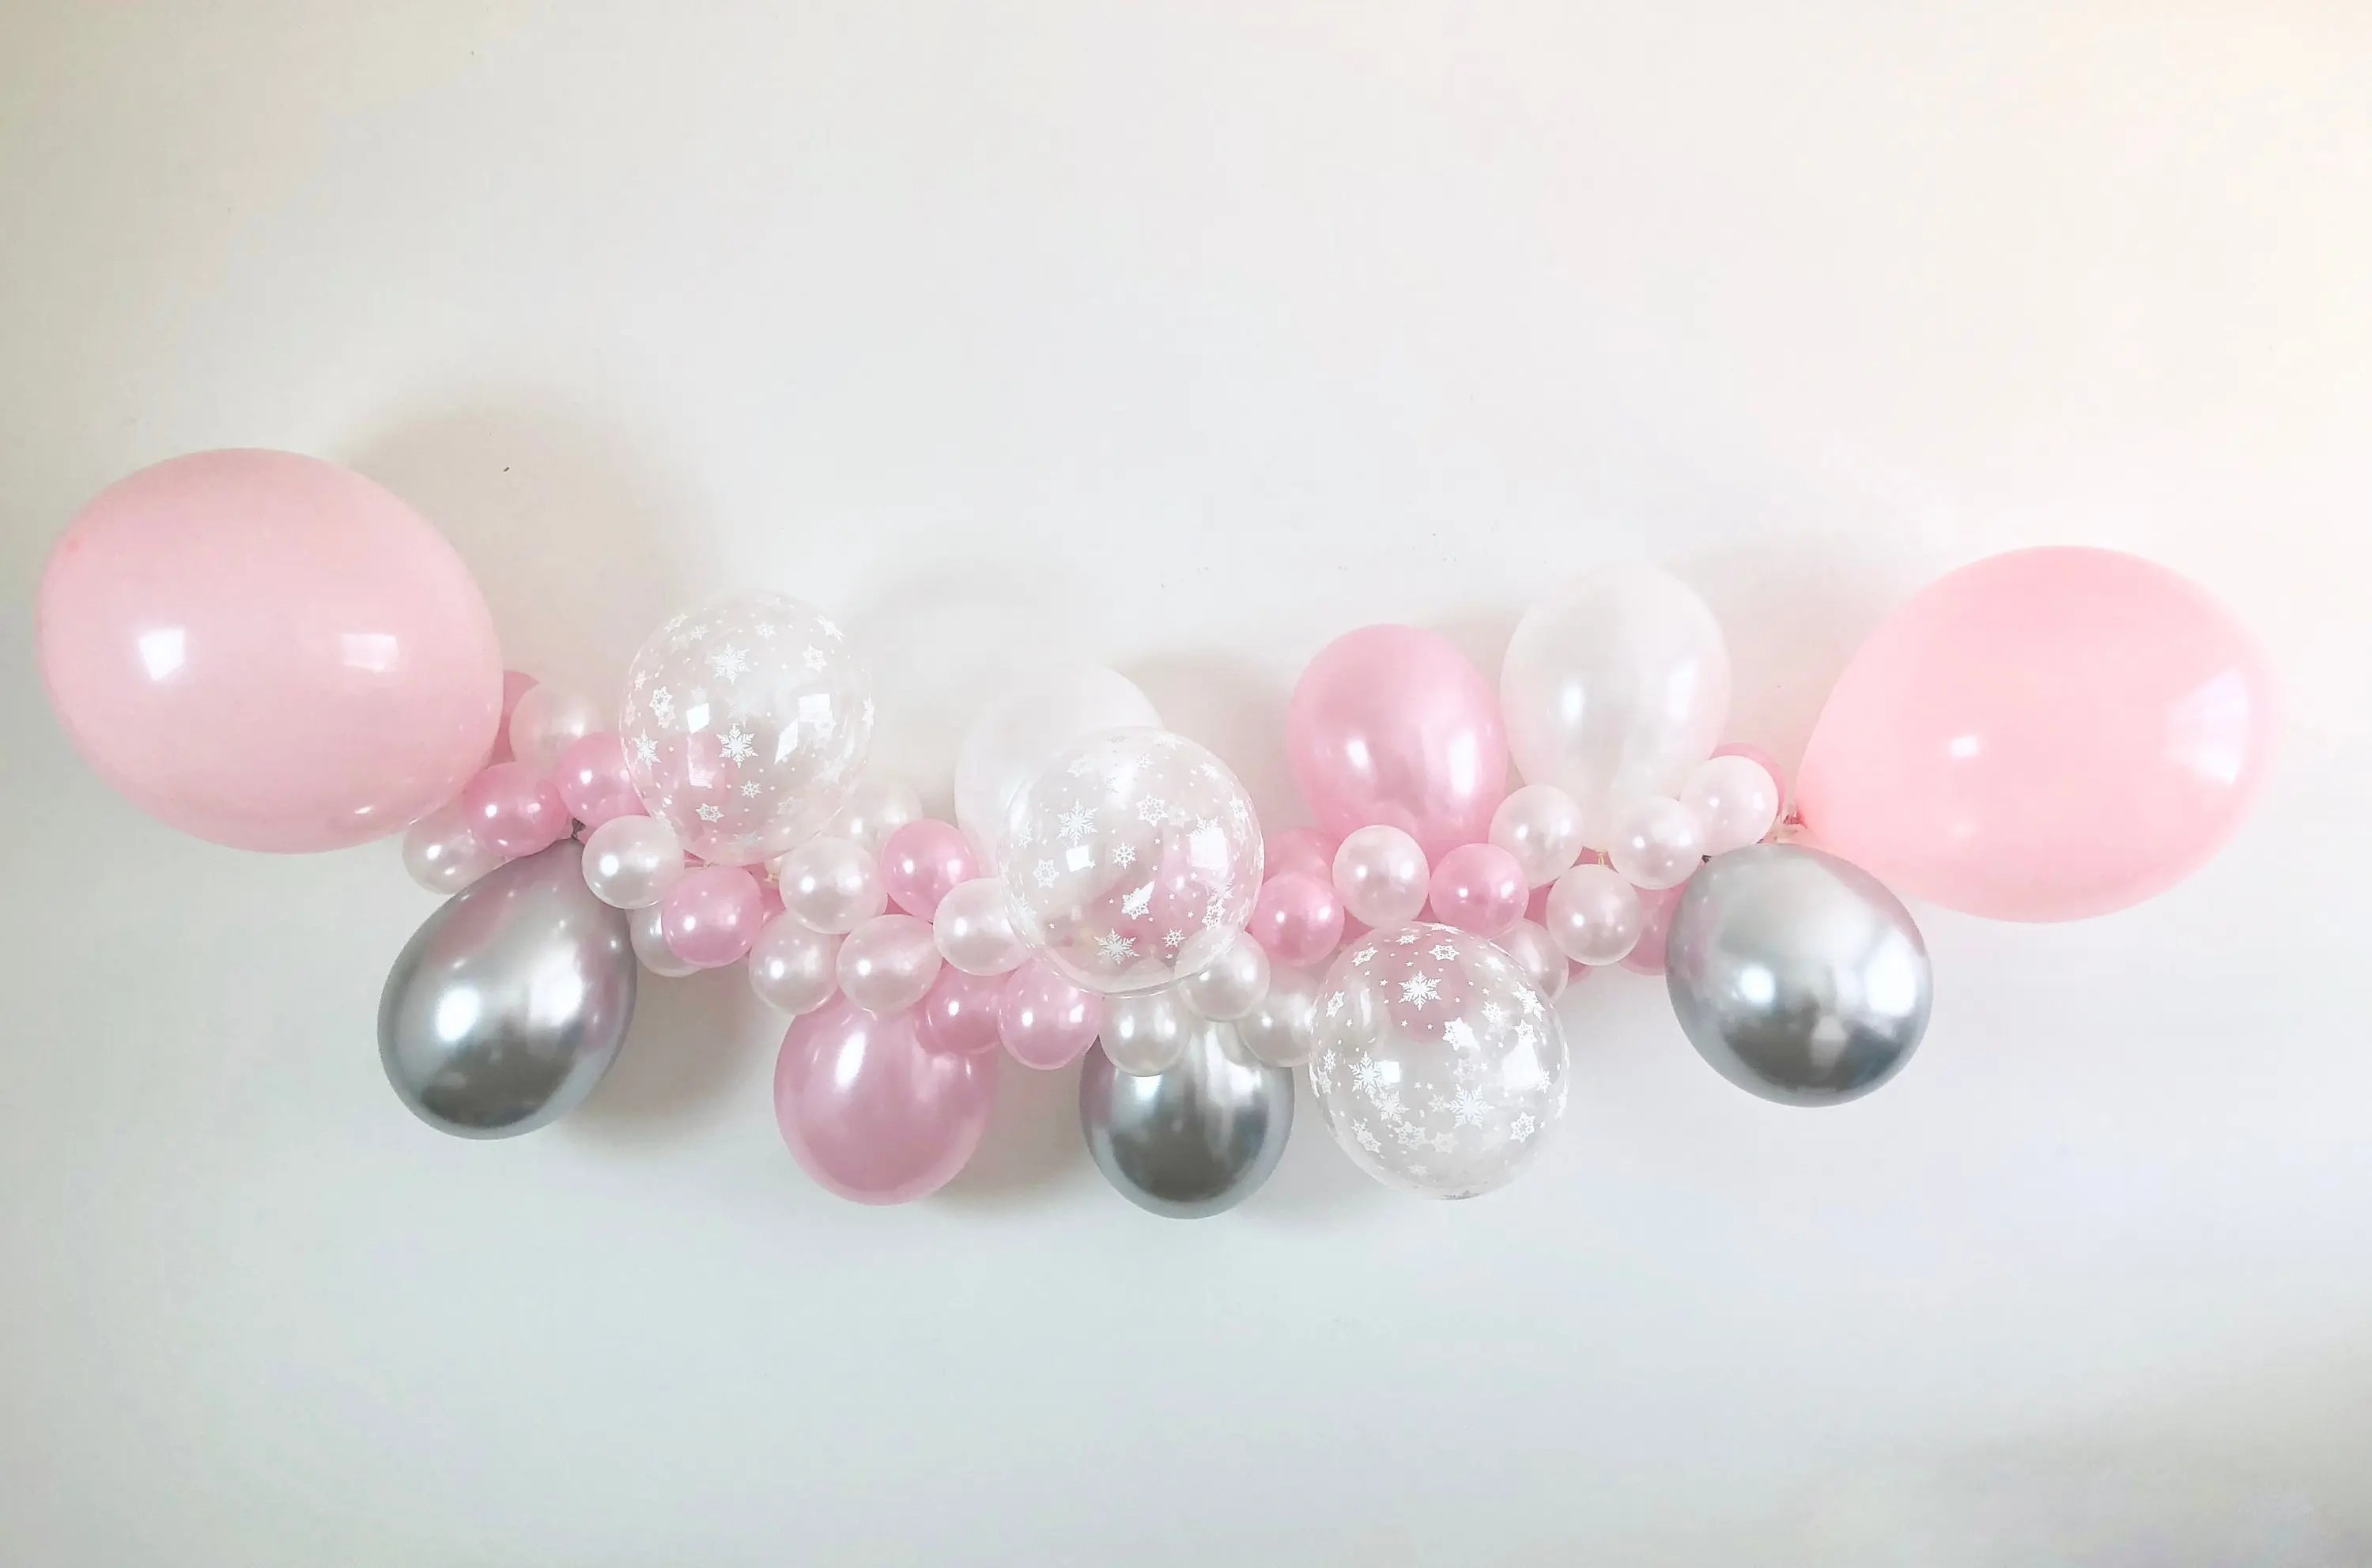 Chrome Silver, Pearl Pink, Snowflake, Pearl White DIY Balloon Garland Kit